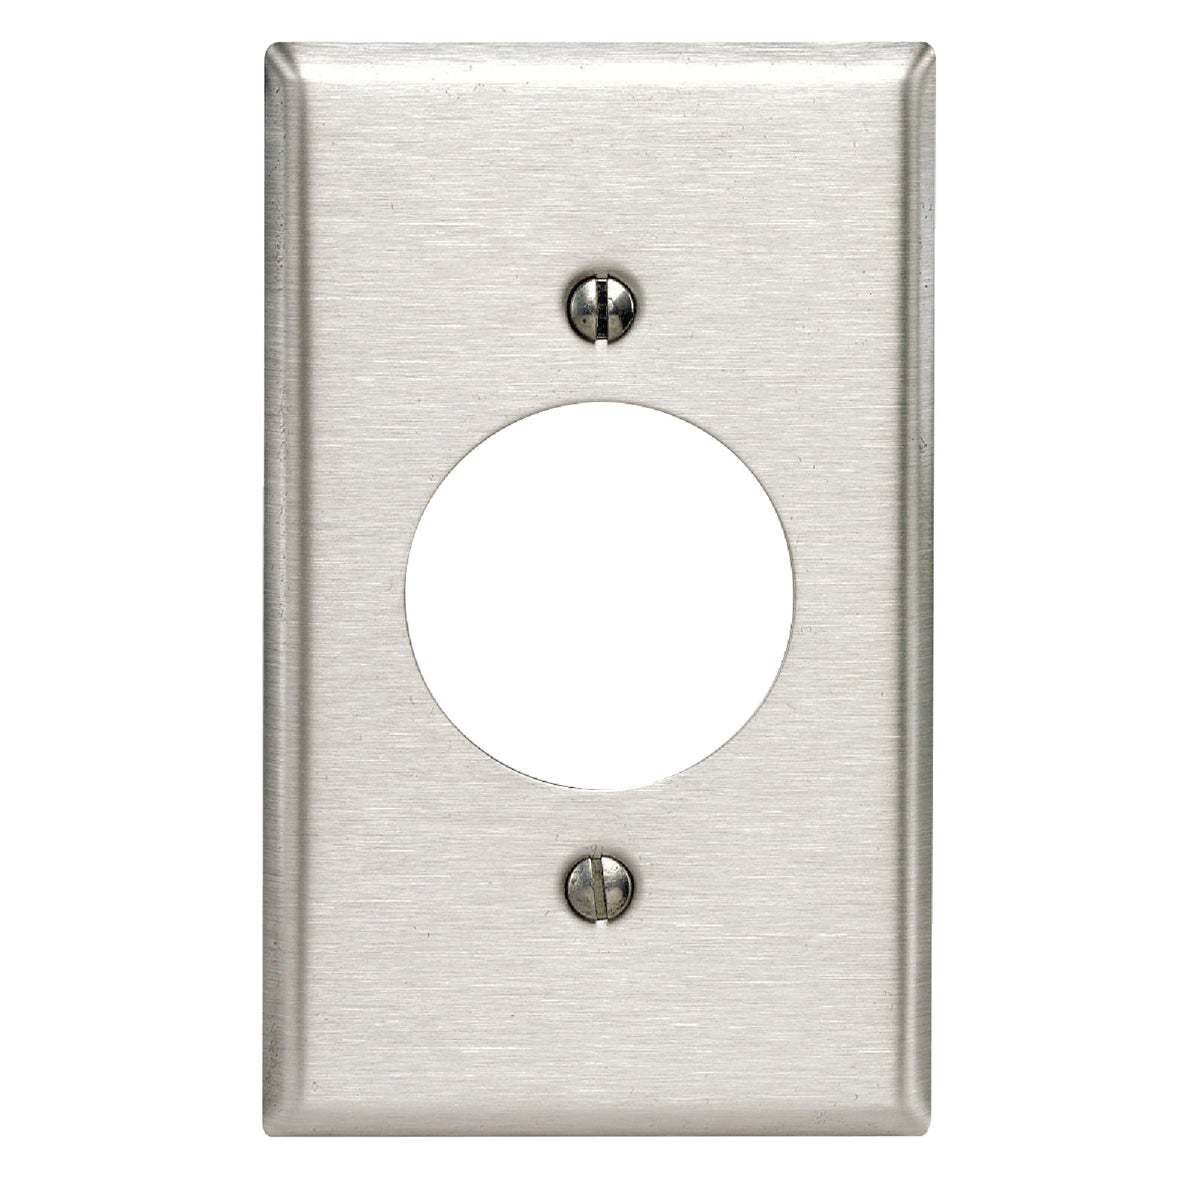 SS SINGLE WALL PLATE - 84020-040 by Leviton Mfg Co